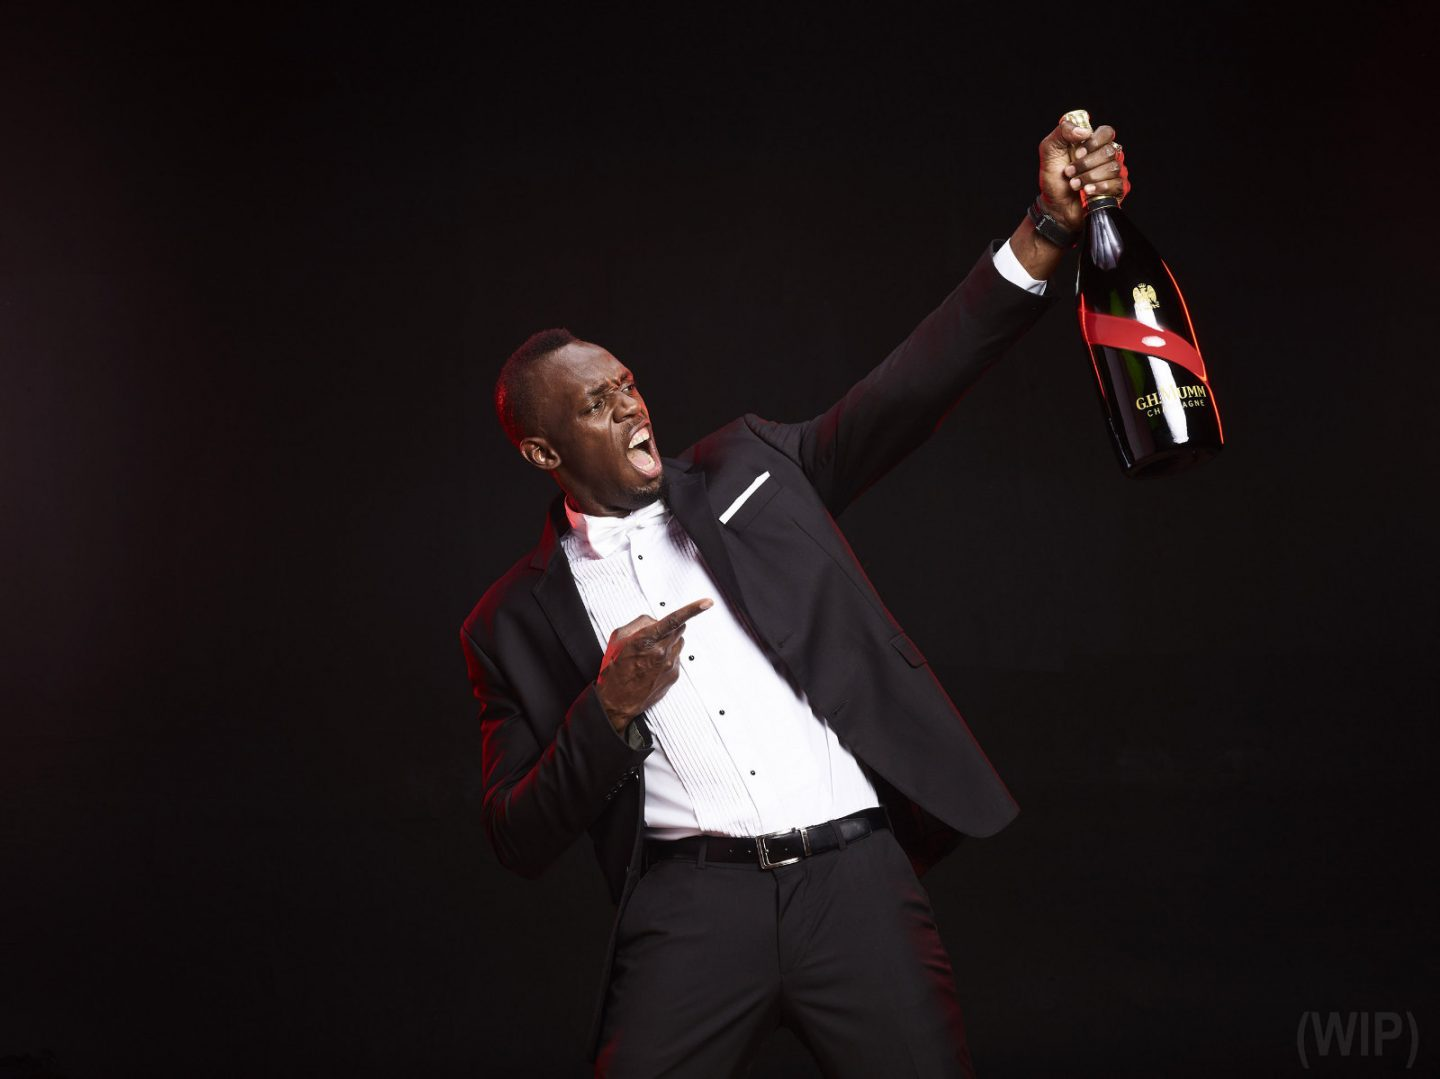 Usain Bolt celebrates with Maison Mumm in latest spot featuring Yendi Philipps